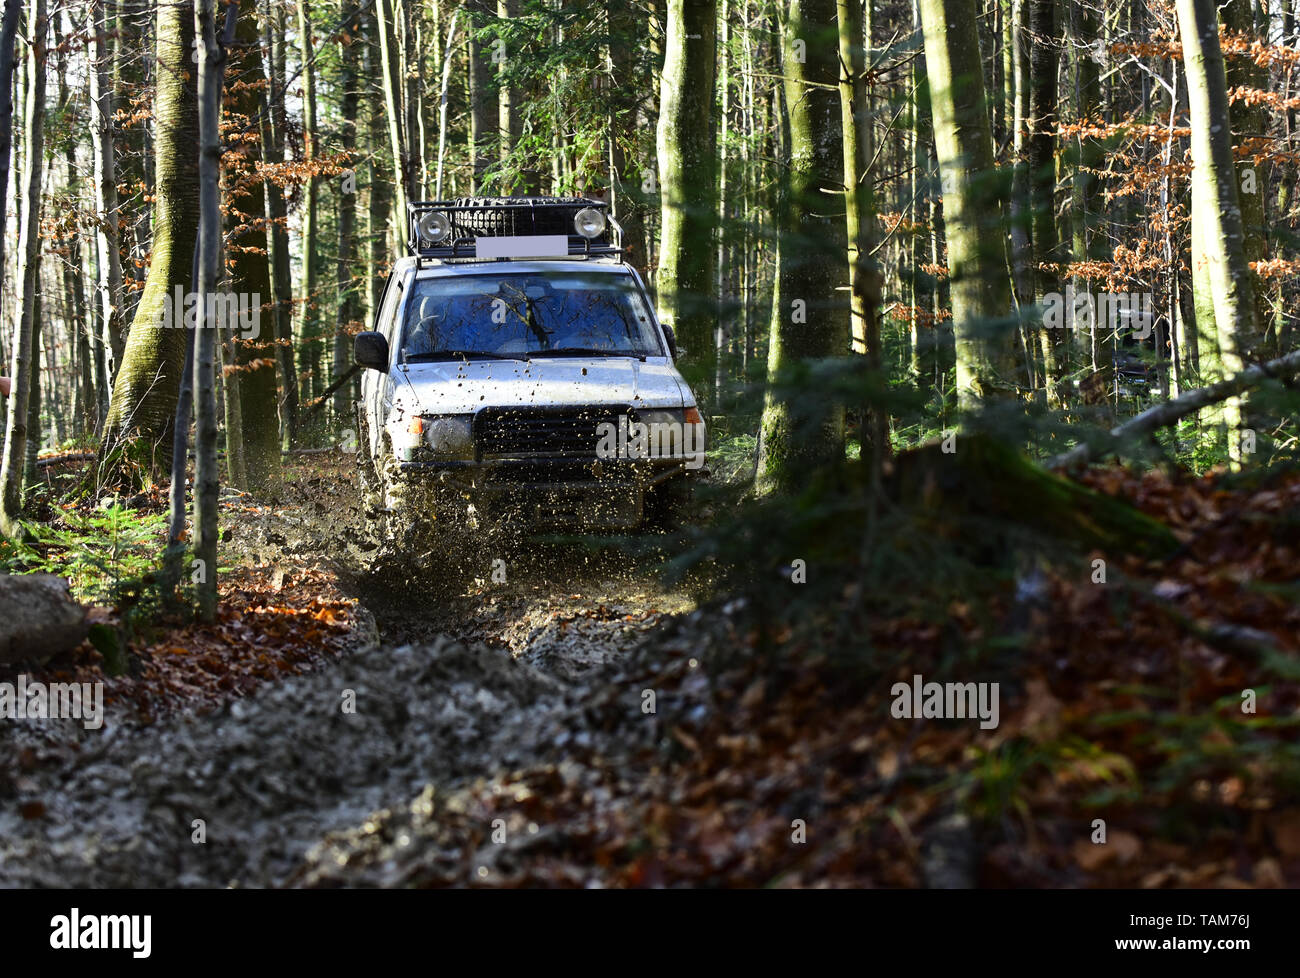 Rallying, competition and four wheel drive concept. Sport utility vehicle or SUV overcomes obstacles. Motor racing in autumn forest Offroad race on - Stock Image